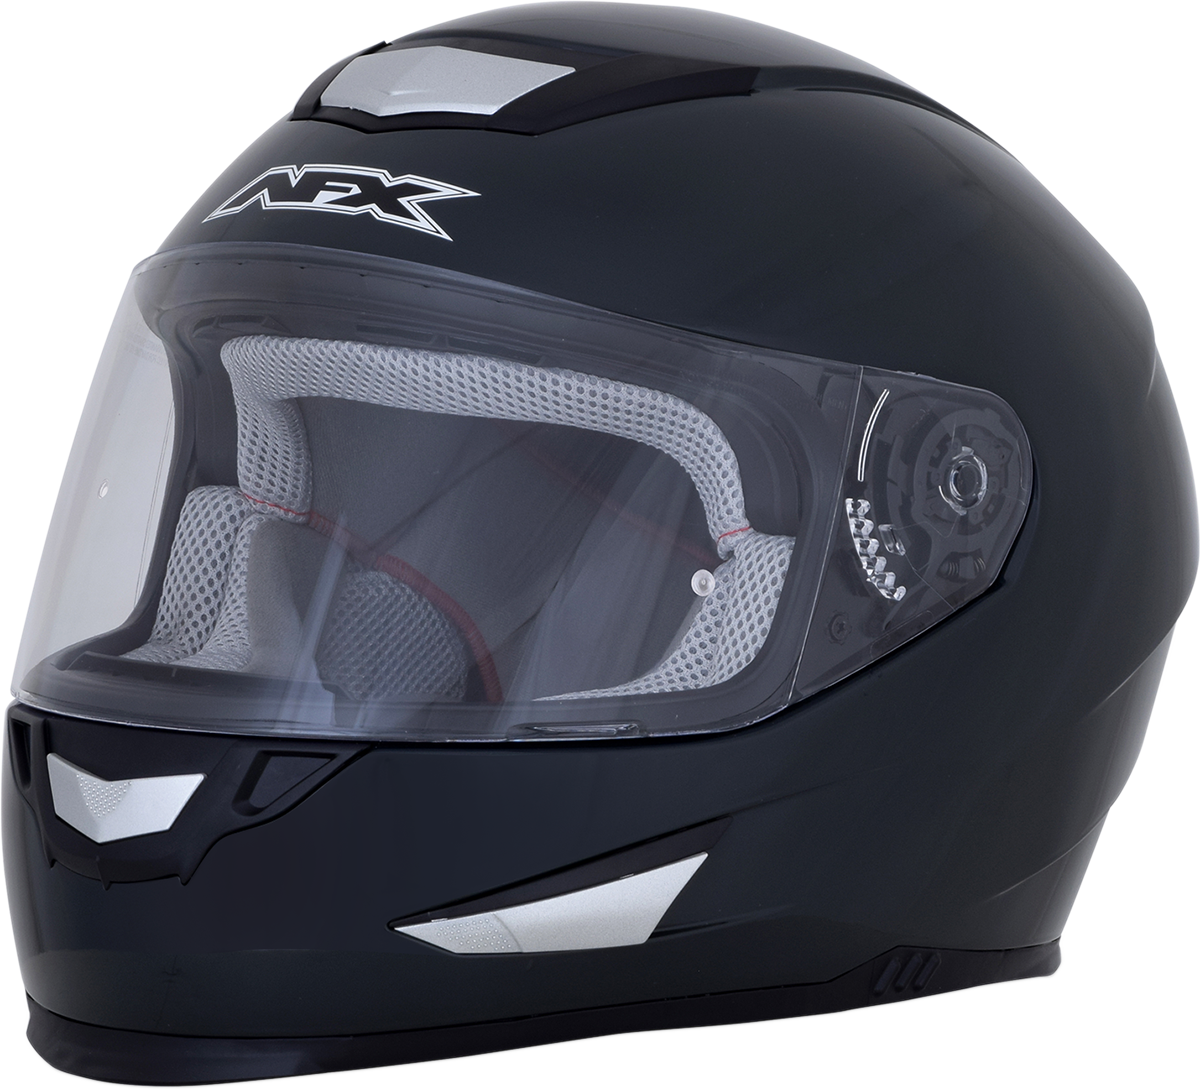 AFX FX99 Black Magnetic Unisex Full Face Motorcycle Riding Street Racing Helmet